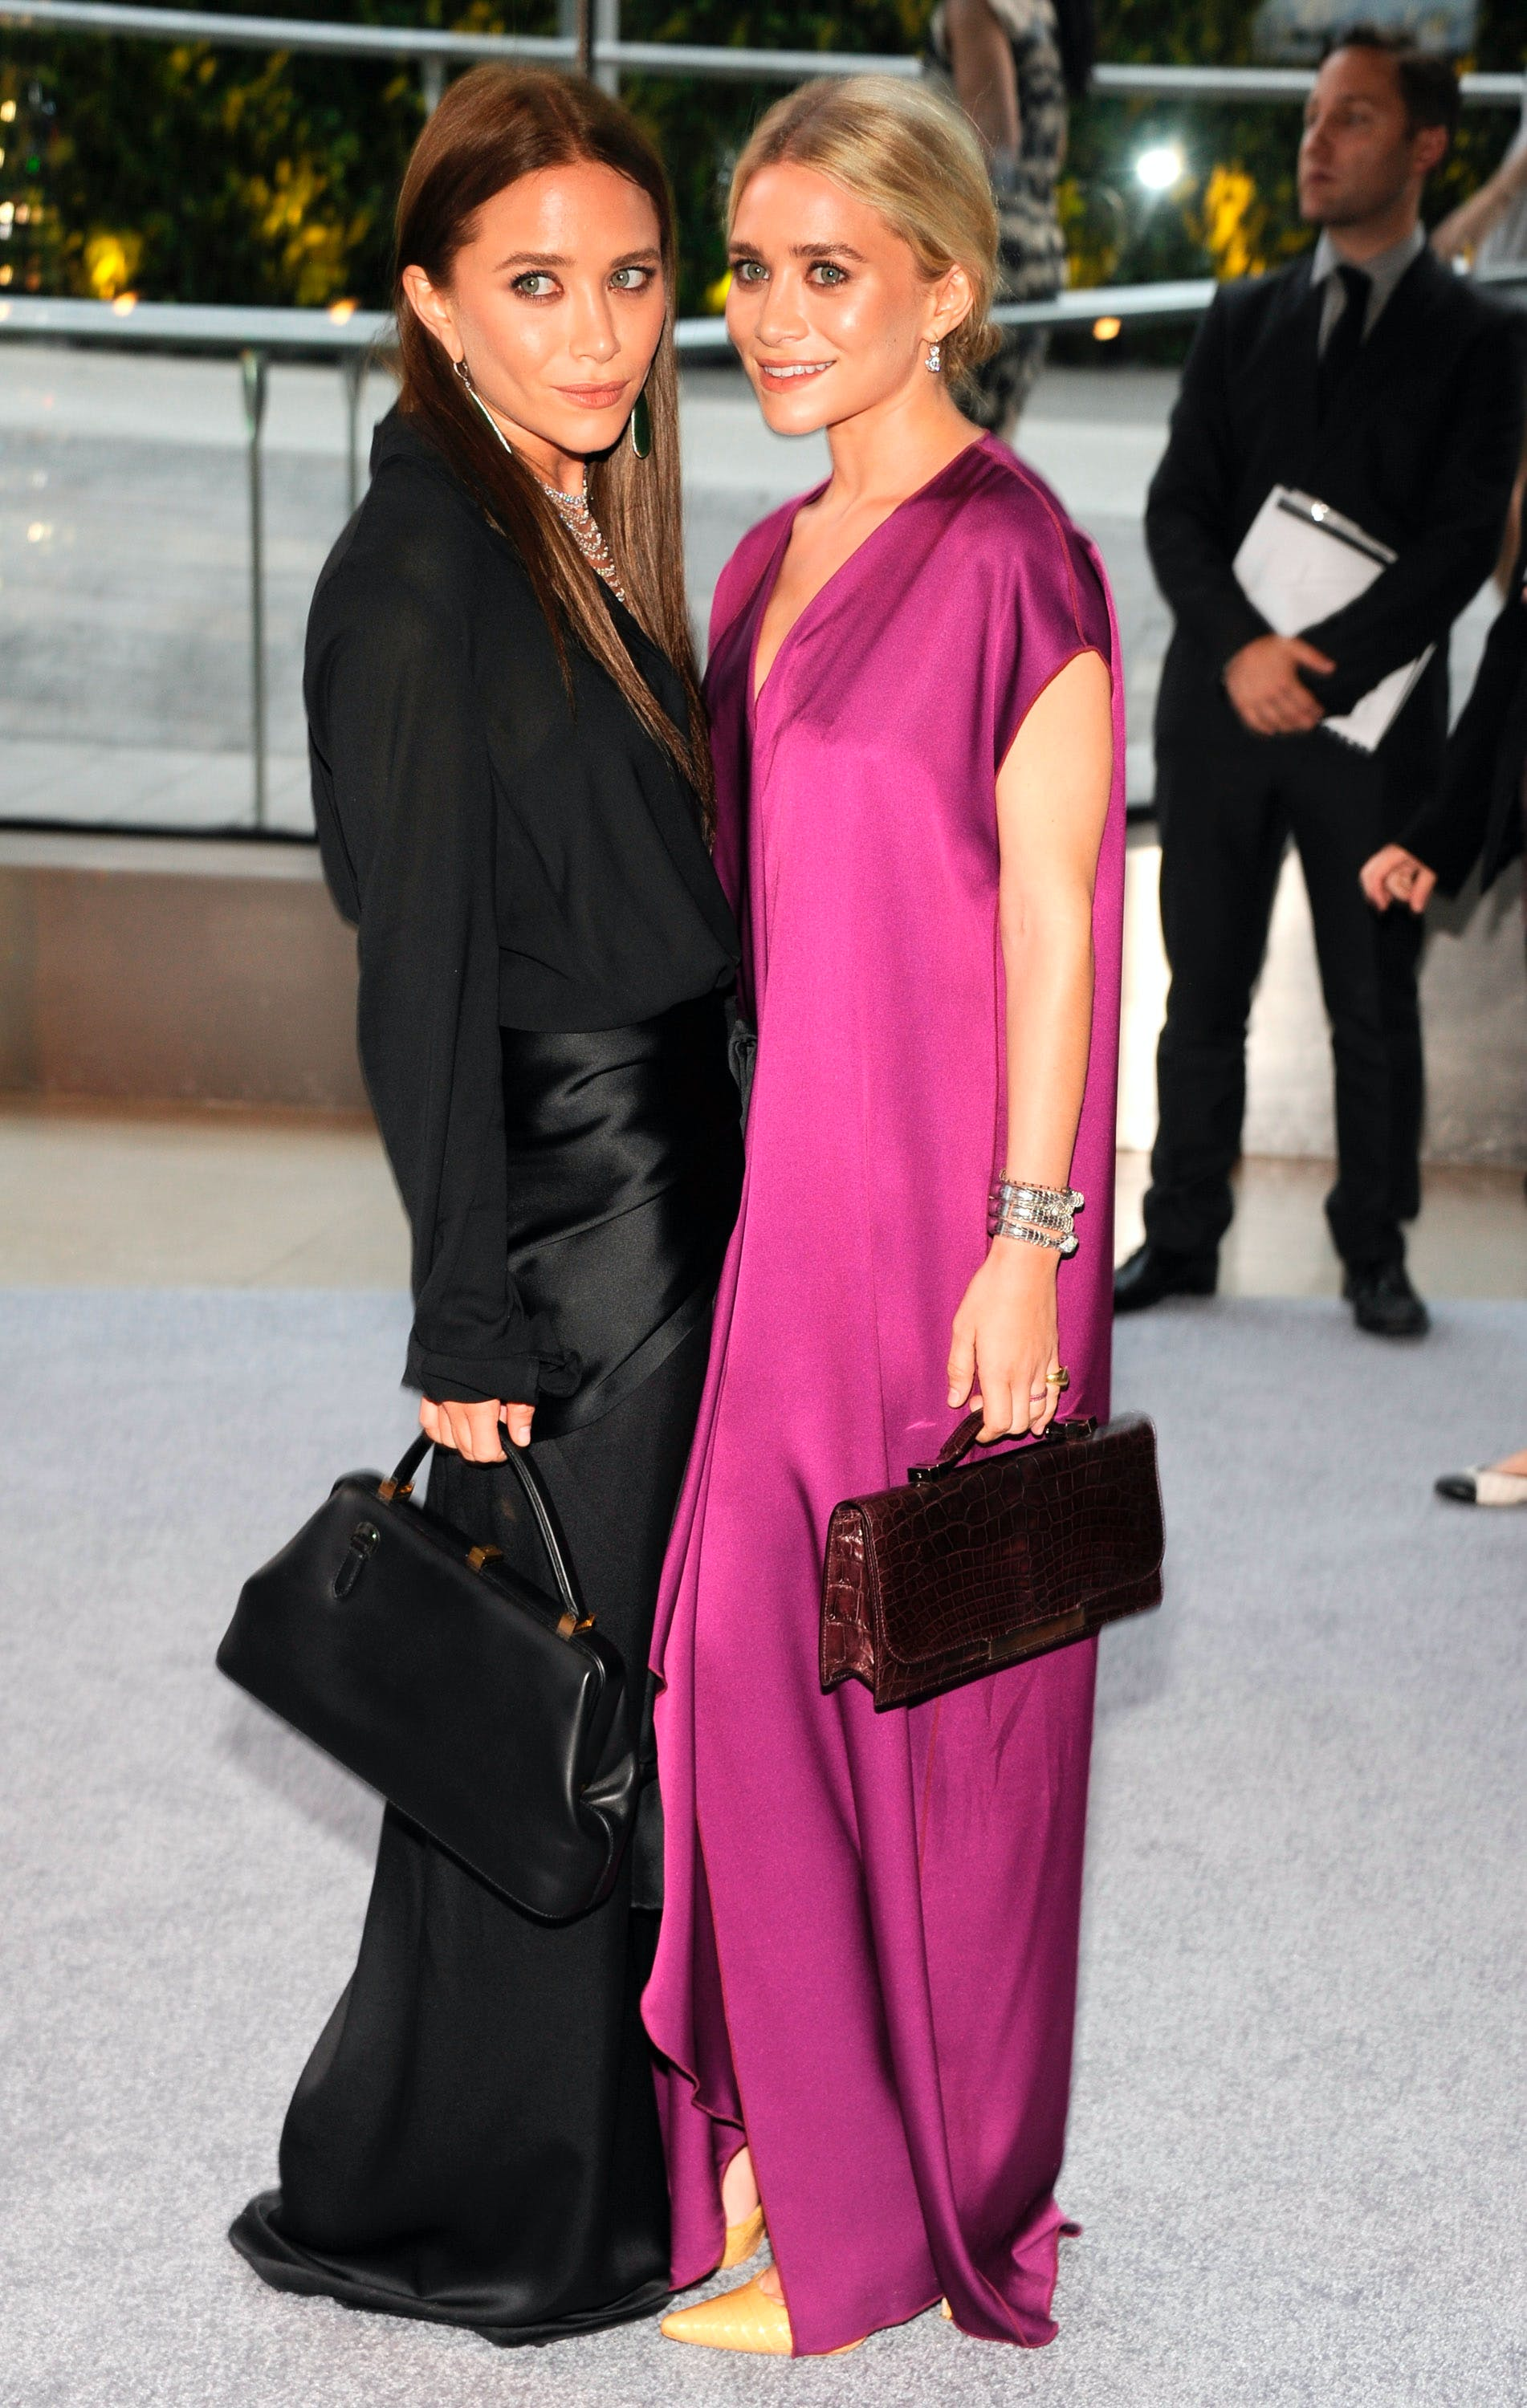 mary kate and ashley olsen at the cfda awards in 2012